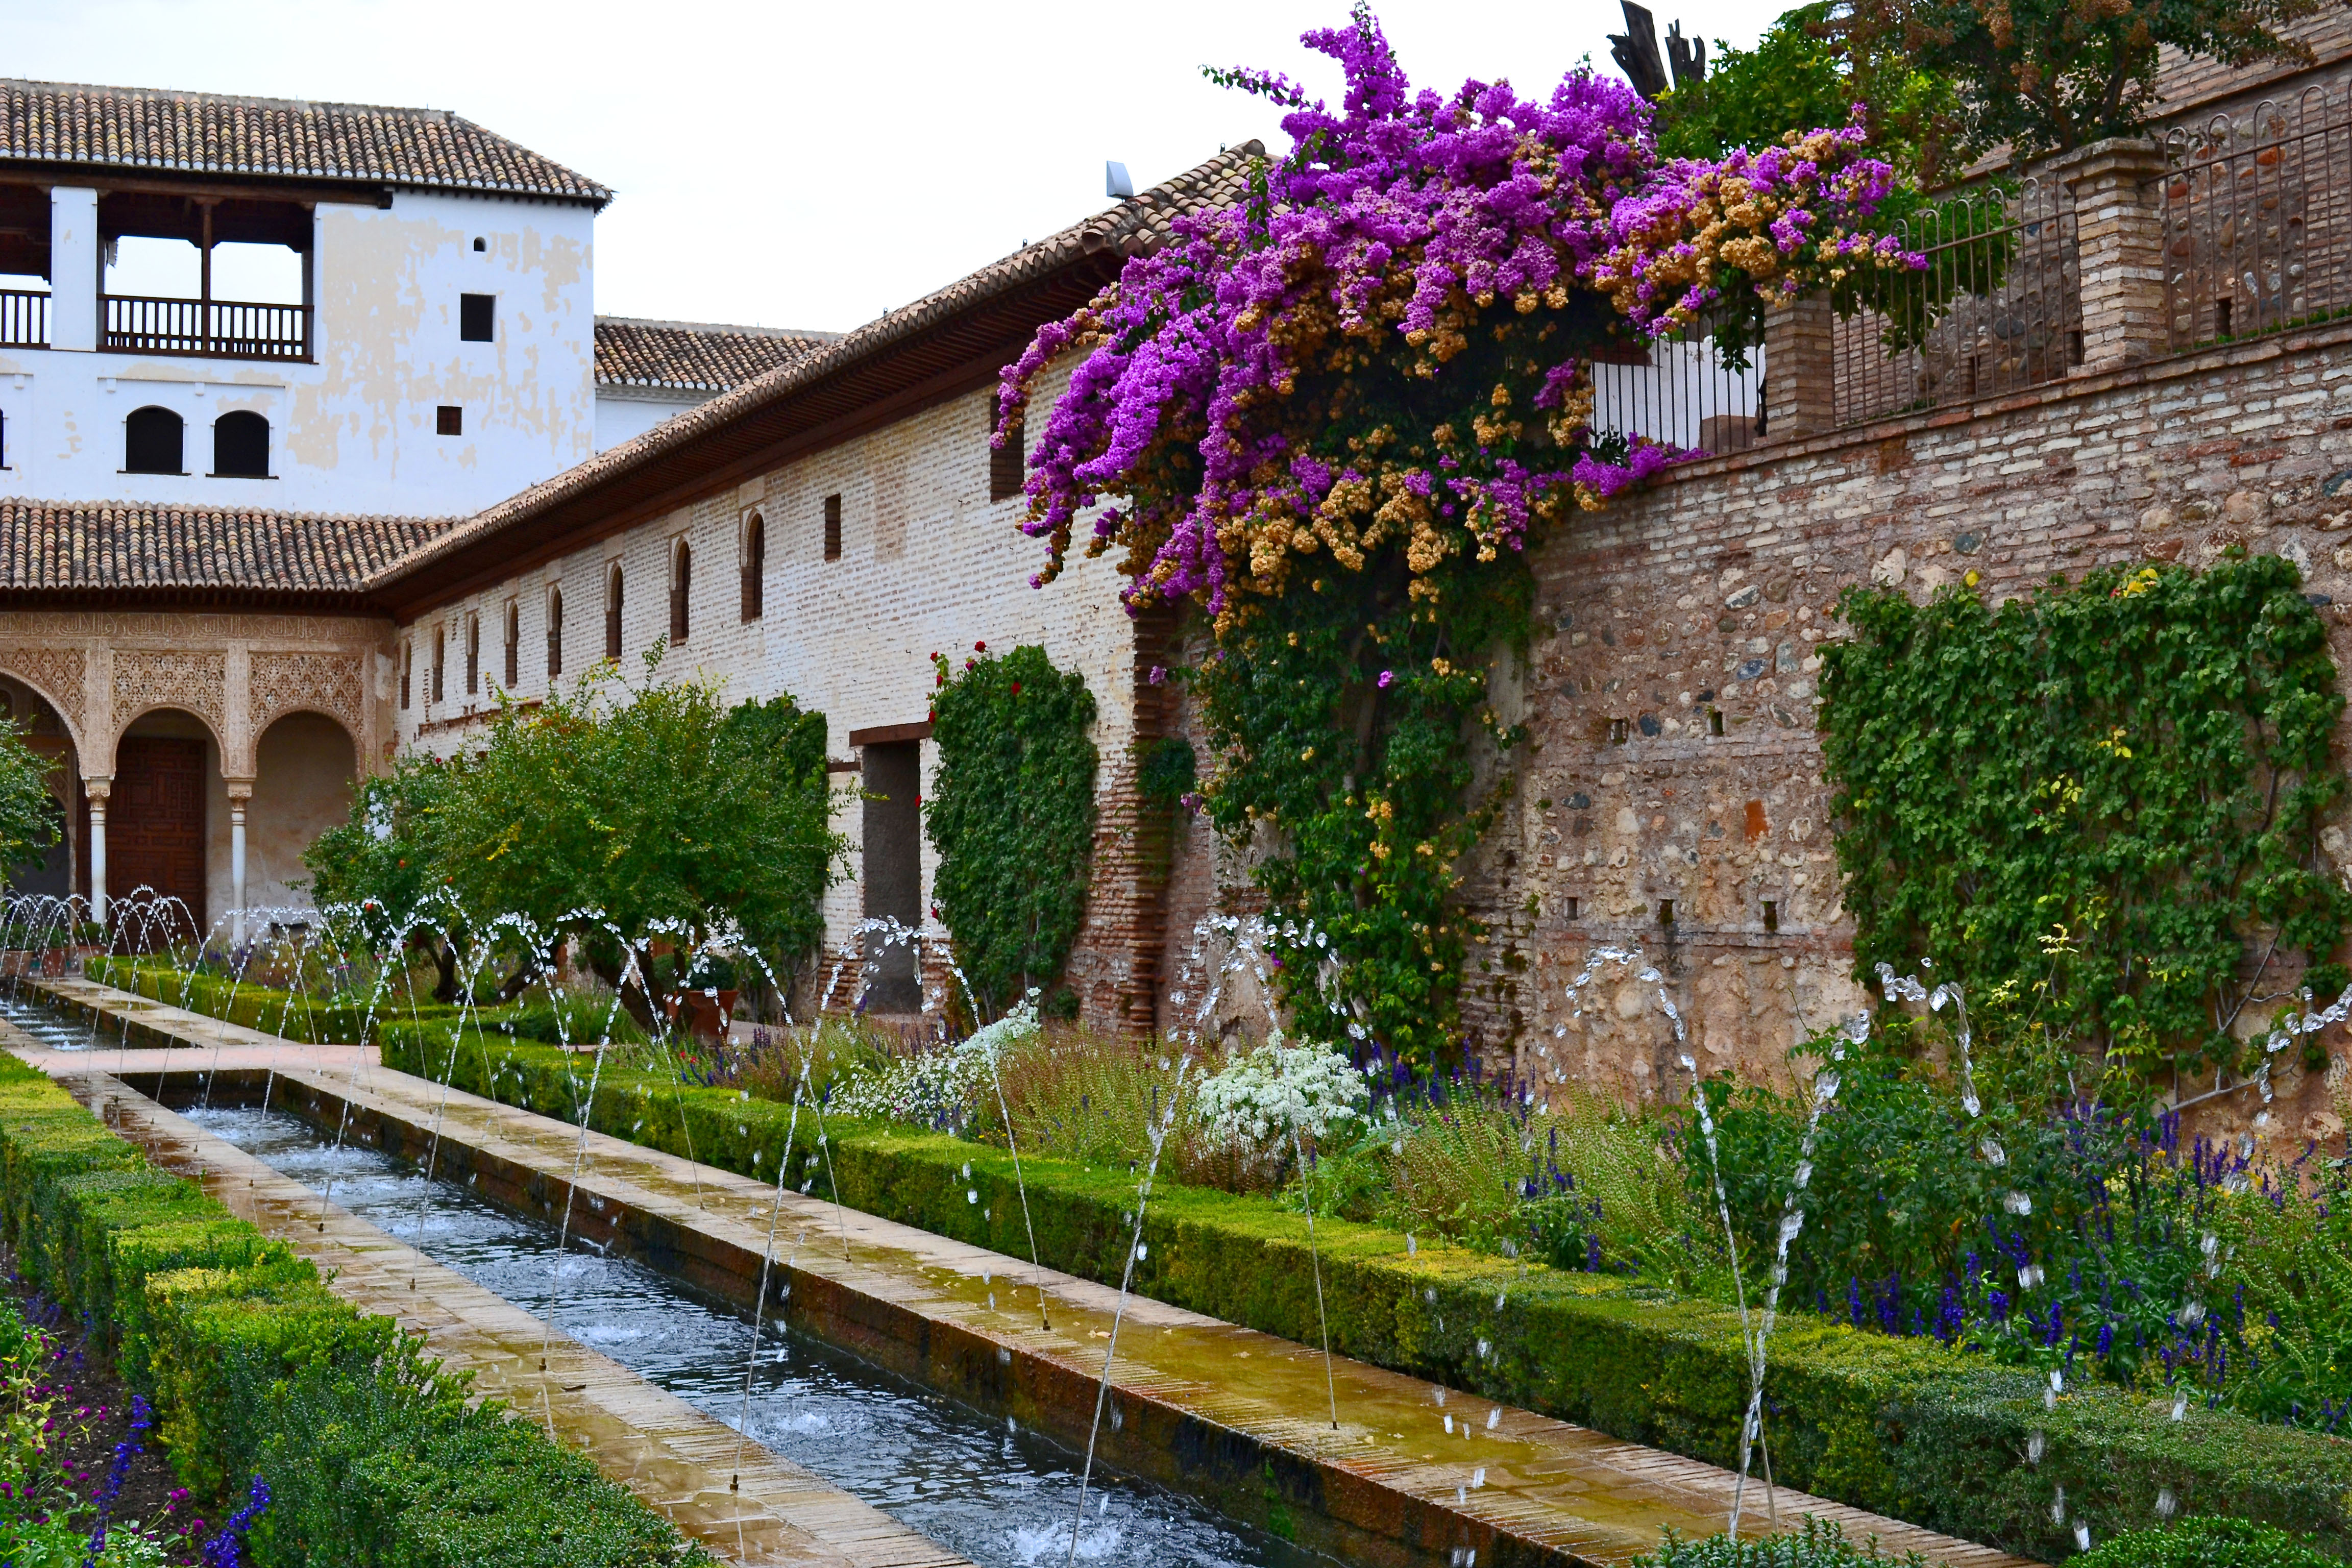 Generalife World Heritage Site: A Thousand and One Year Old Garden - BoomerVoice